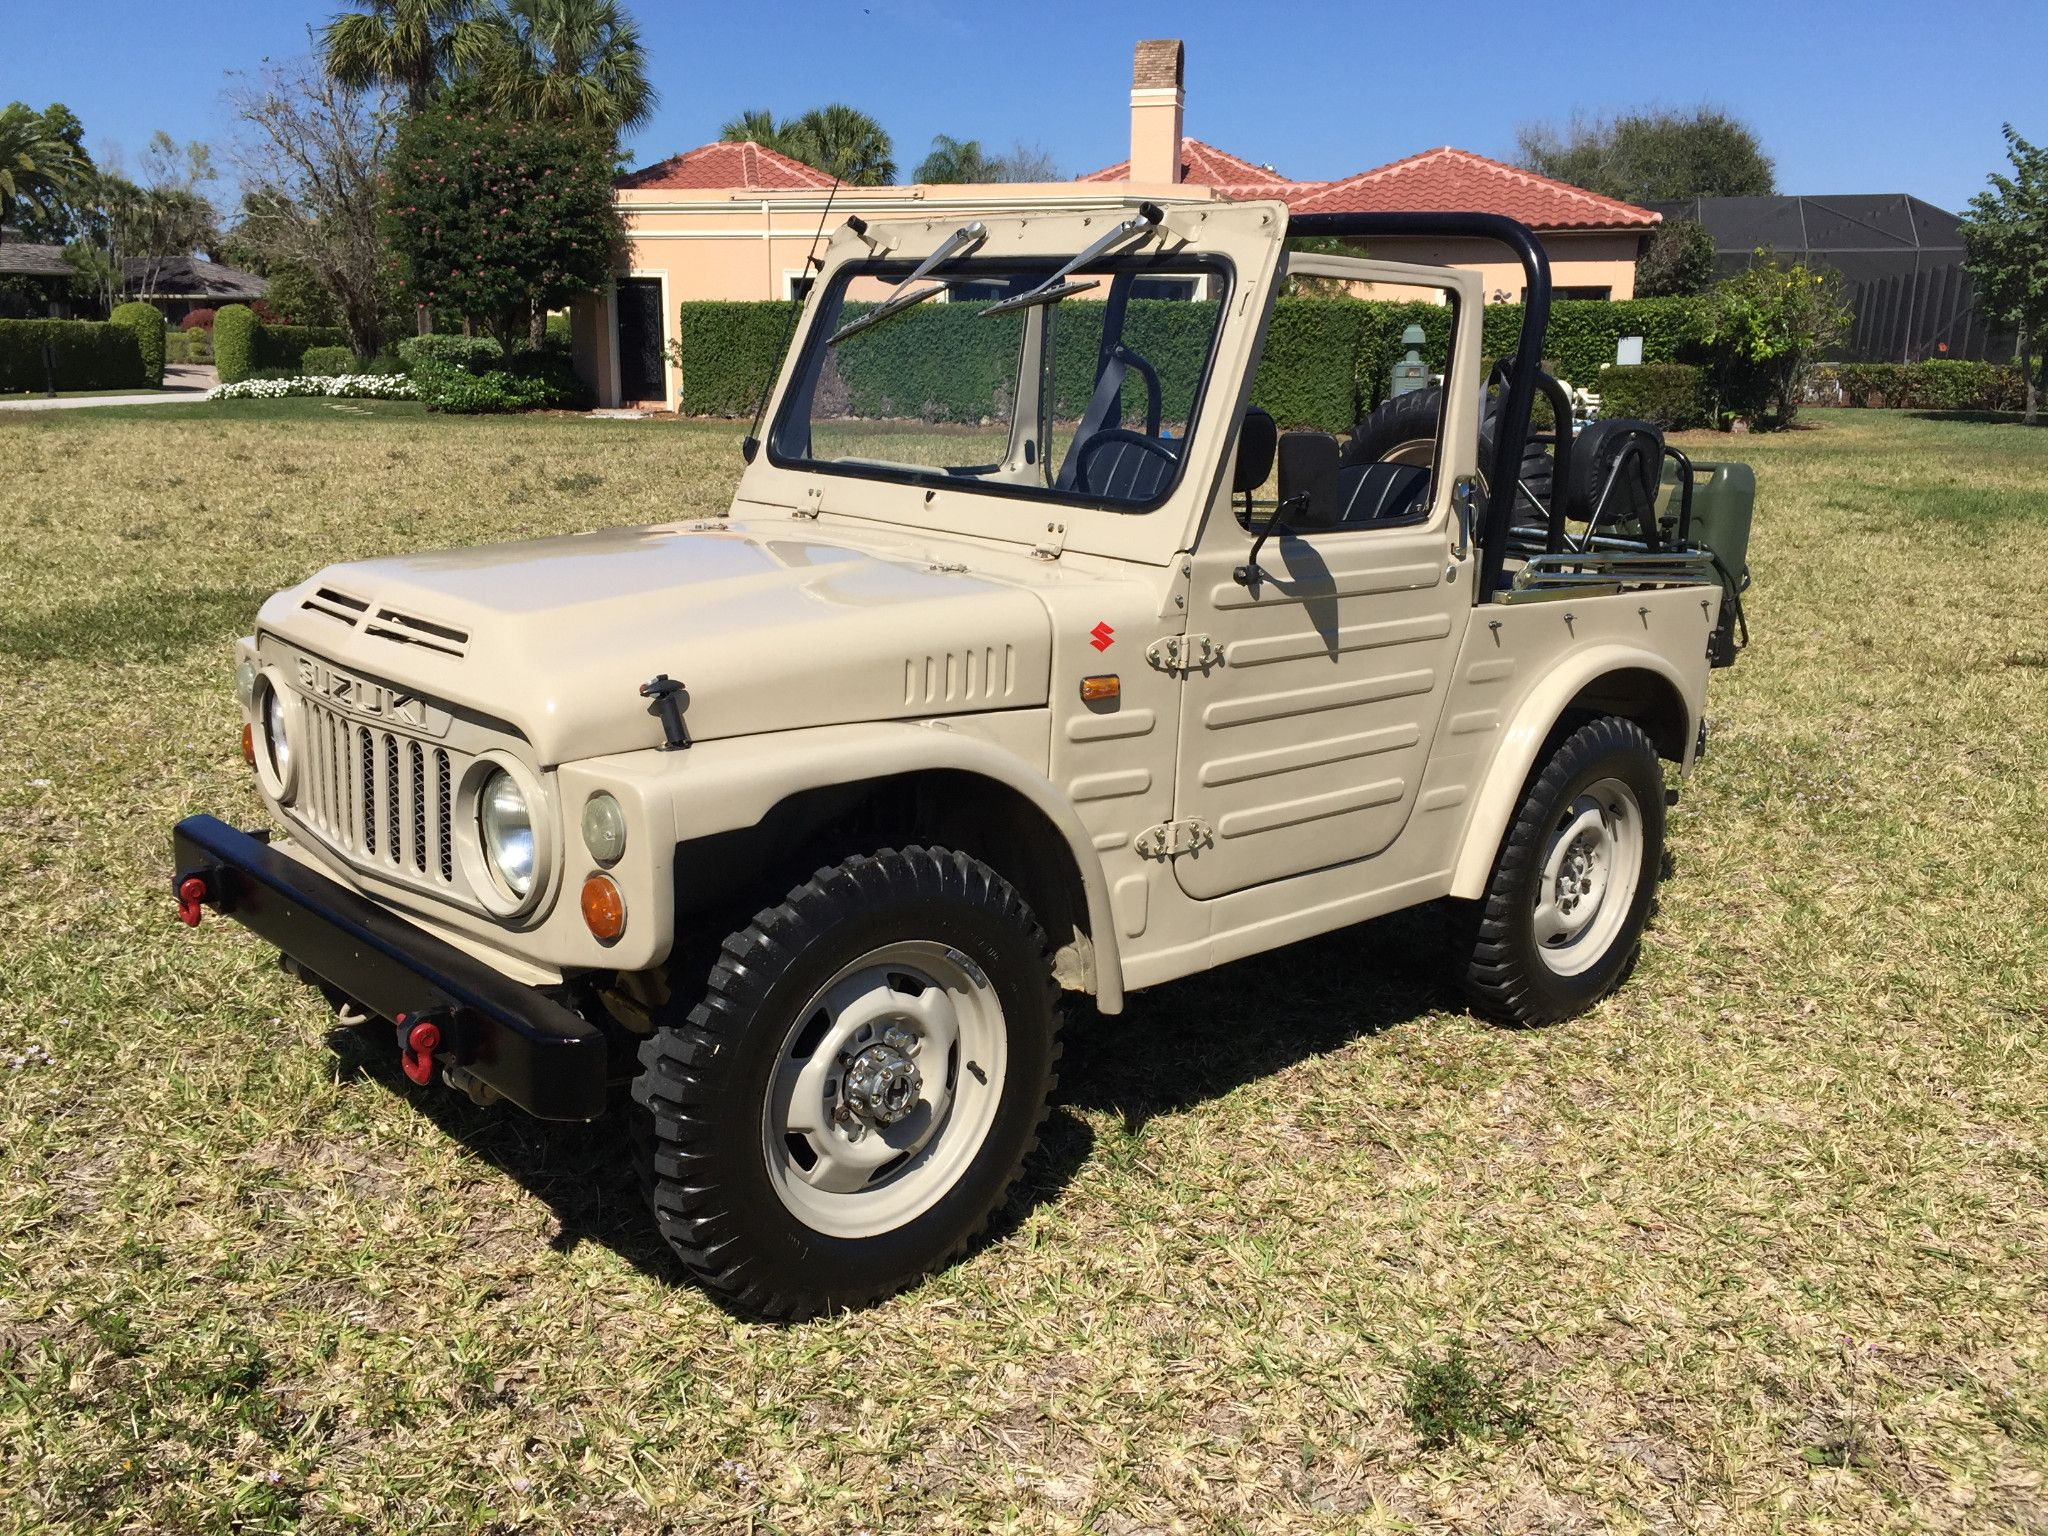 Suzuki Jeep Samurai For Sale Uk